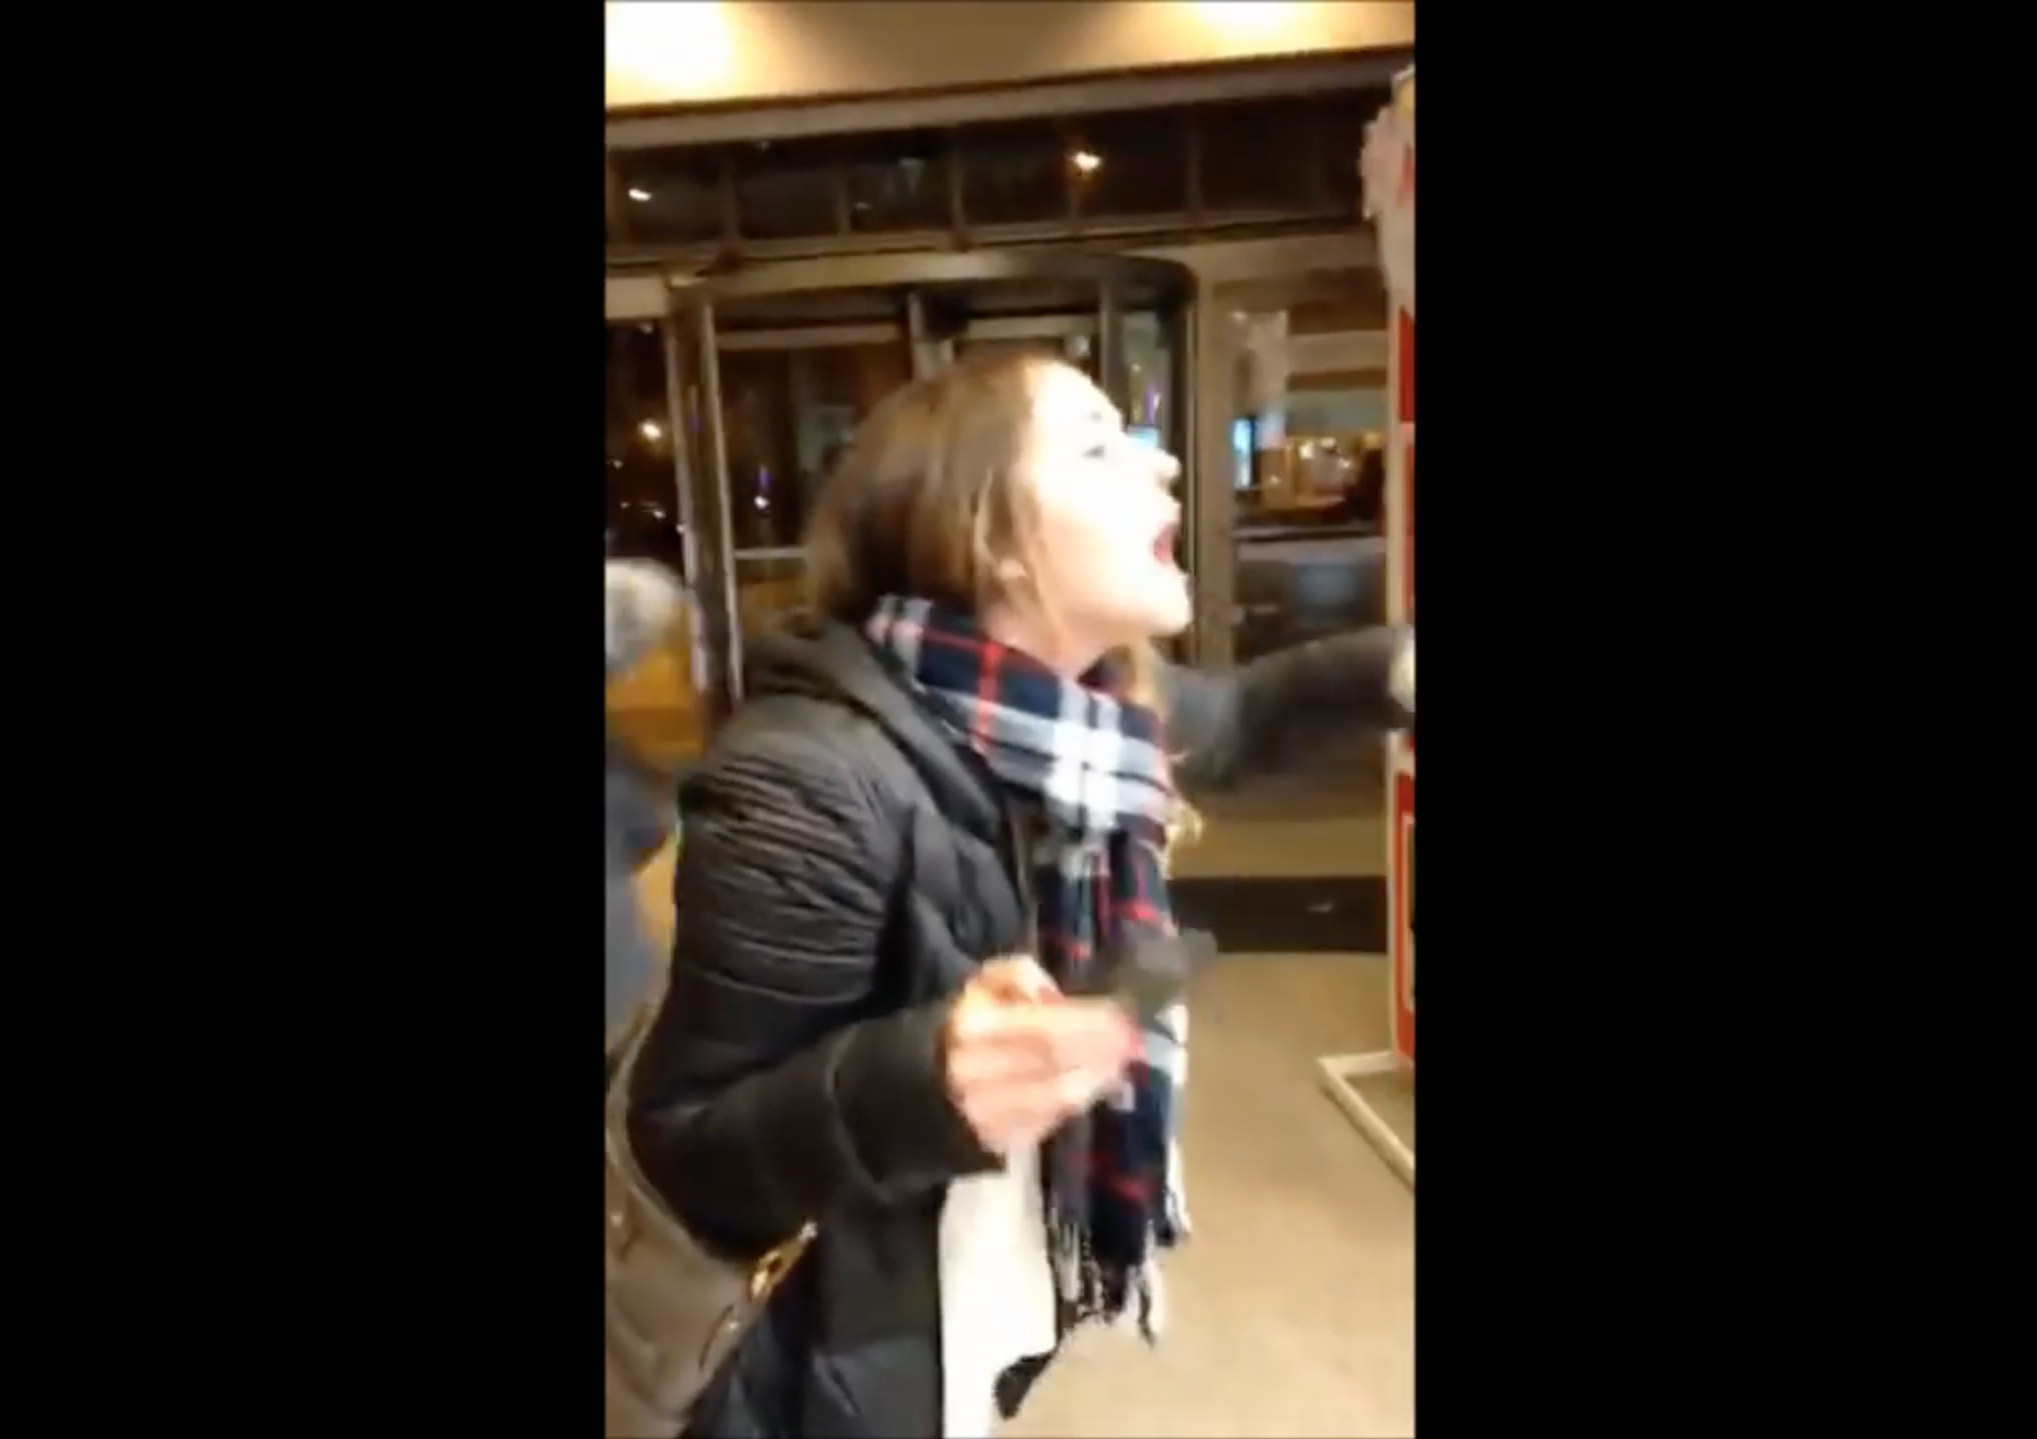 Woman Berates Michaels Employees Claims Discrimination